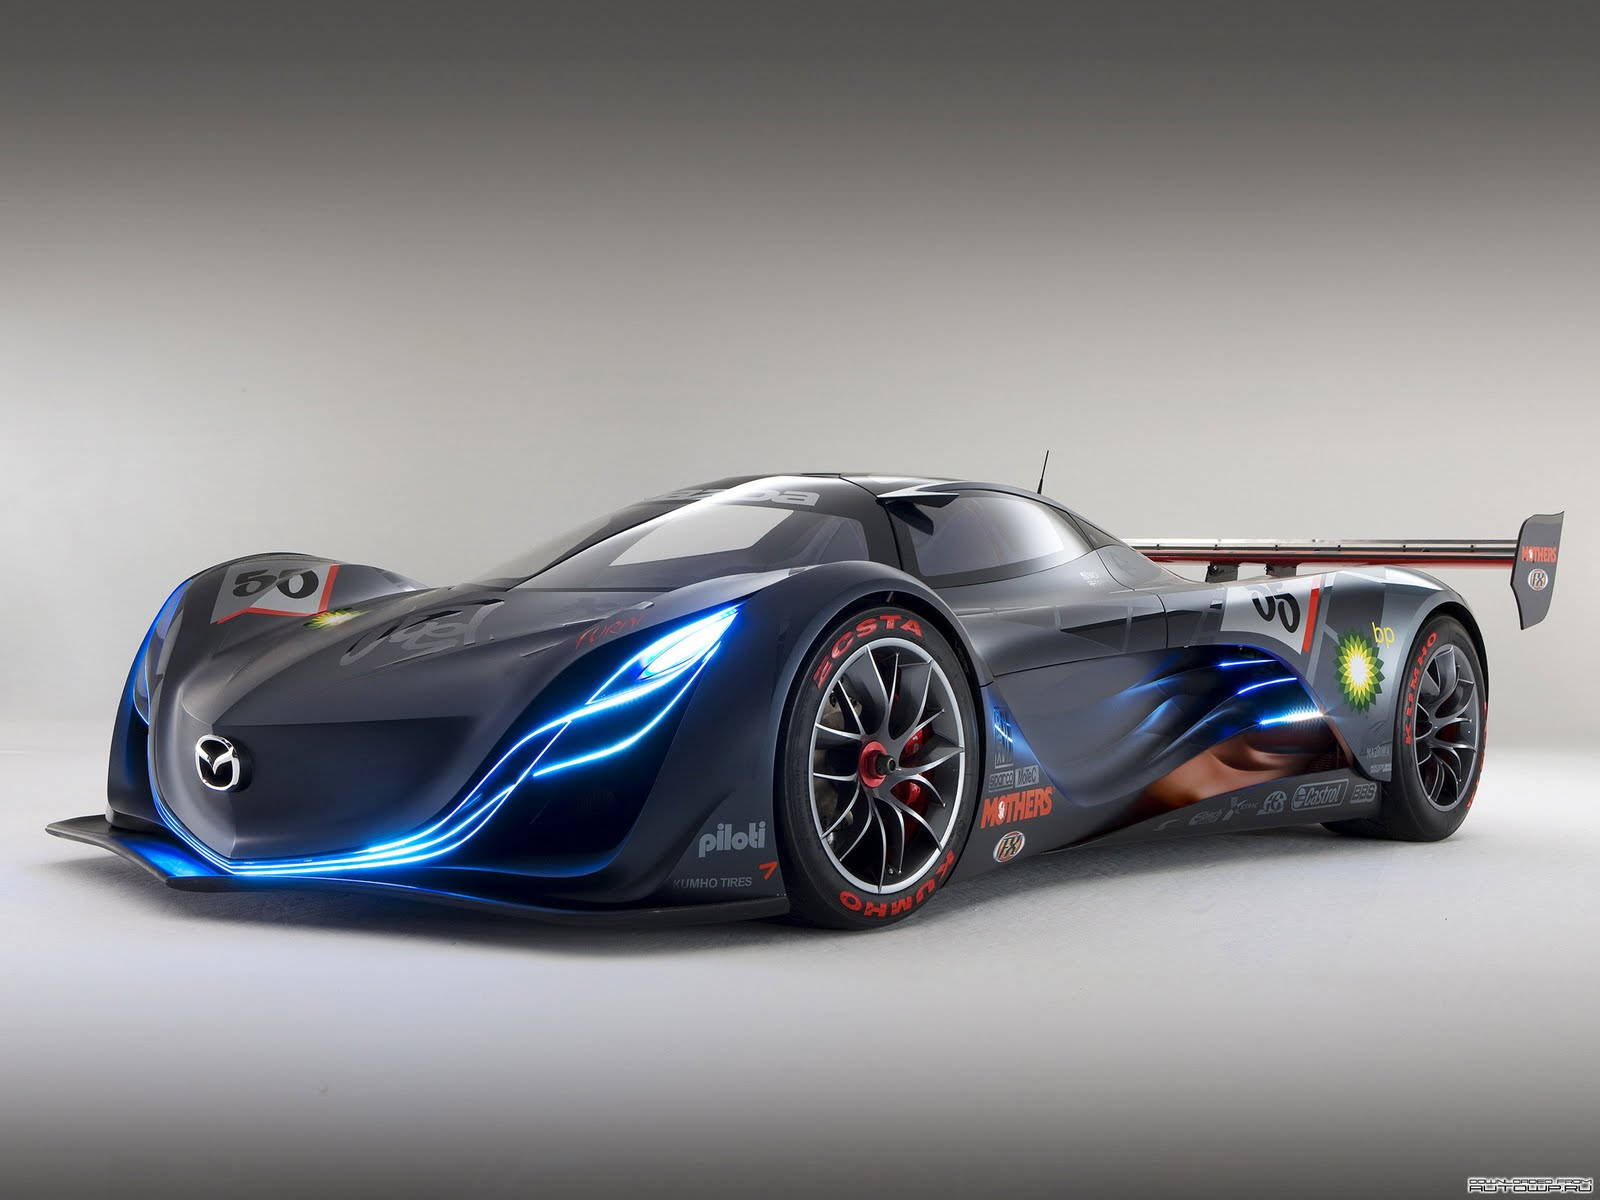 latest racing cars 7 - photo #32